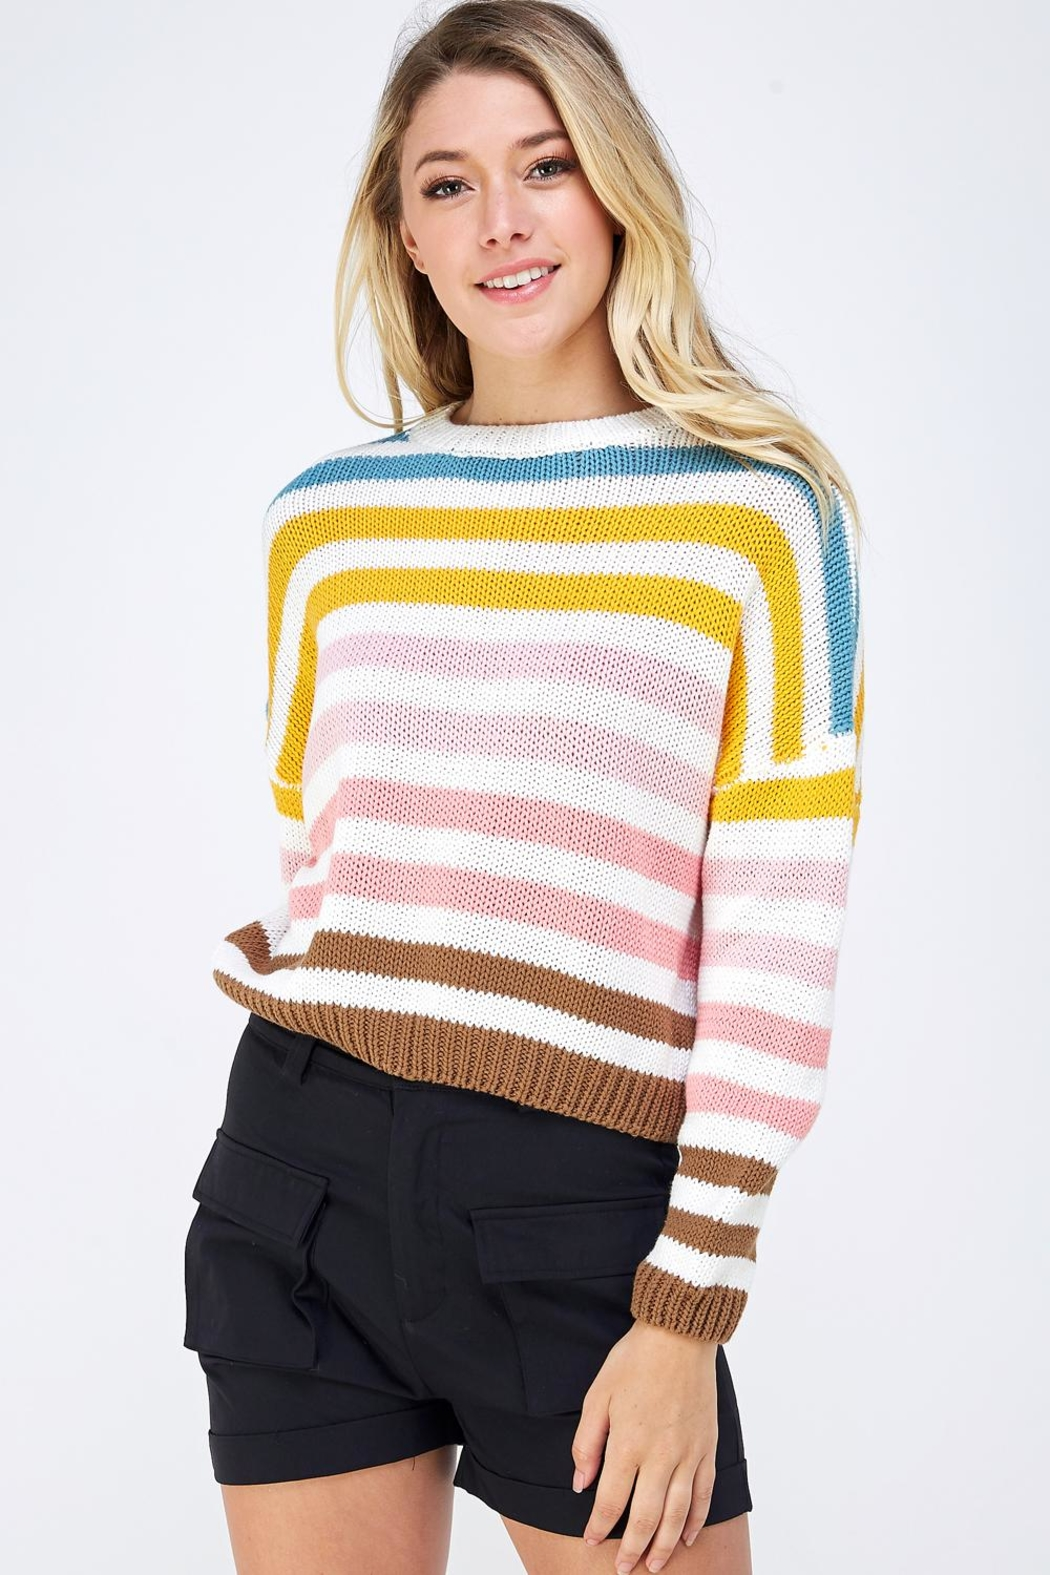 Lumiere Colorful Striped Sweater - Main Image